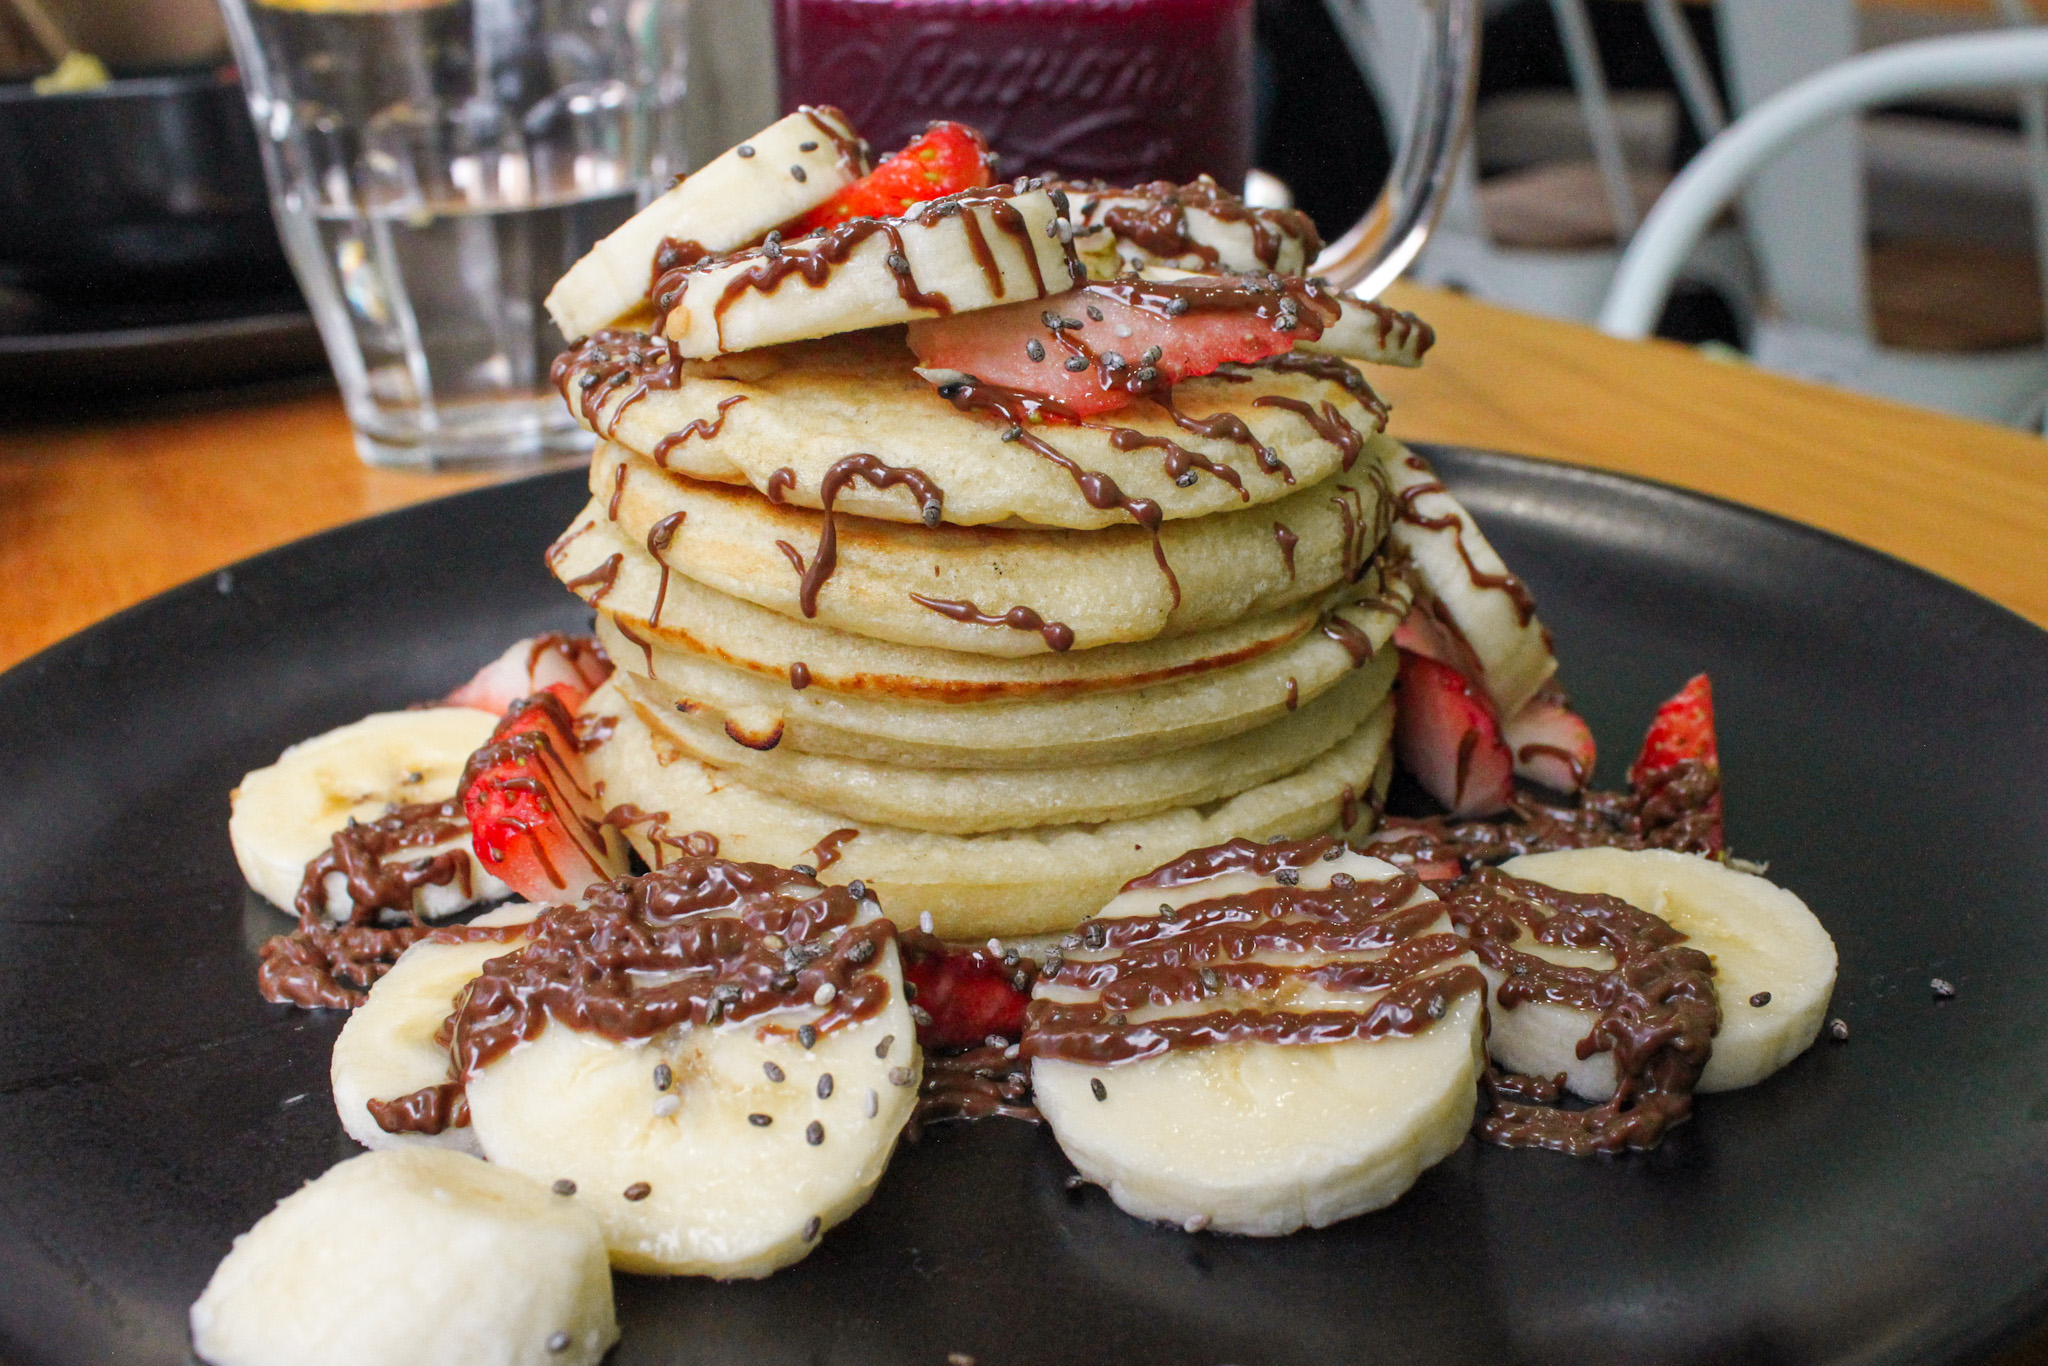 healthy habits superfood cafe where to get best pancakes in macau